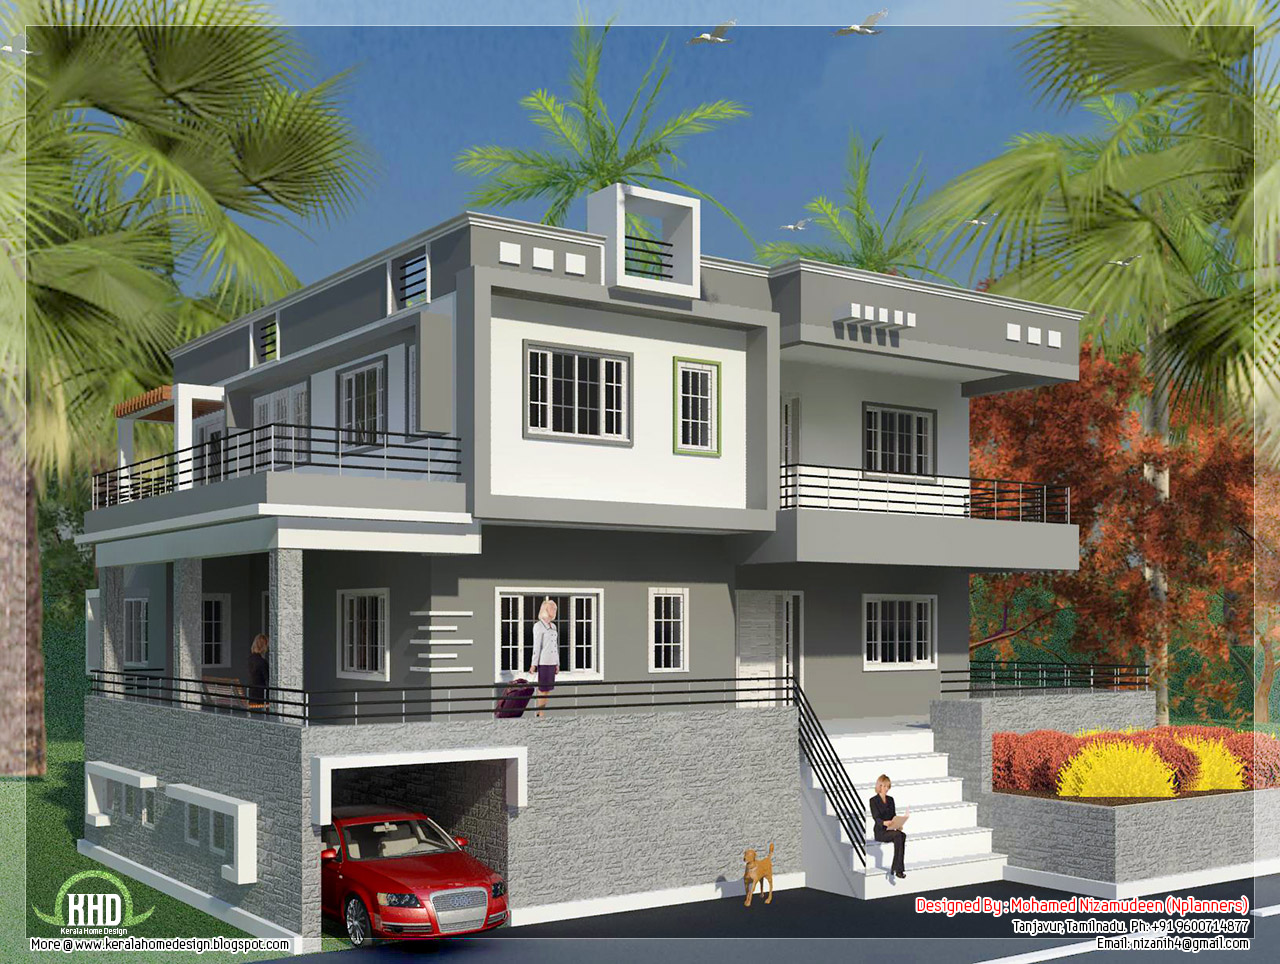 North indian style minimalist house exterior design for Indian house exterior design pictures